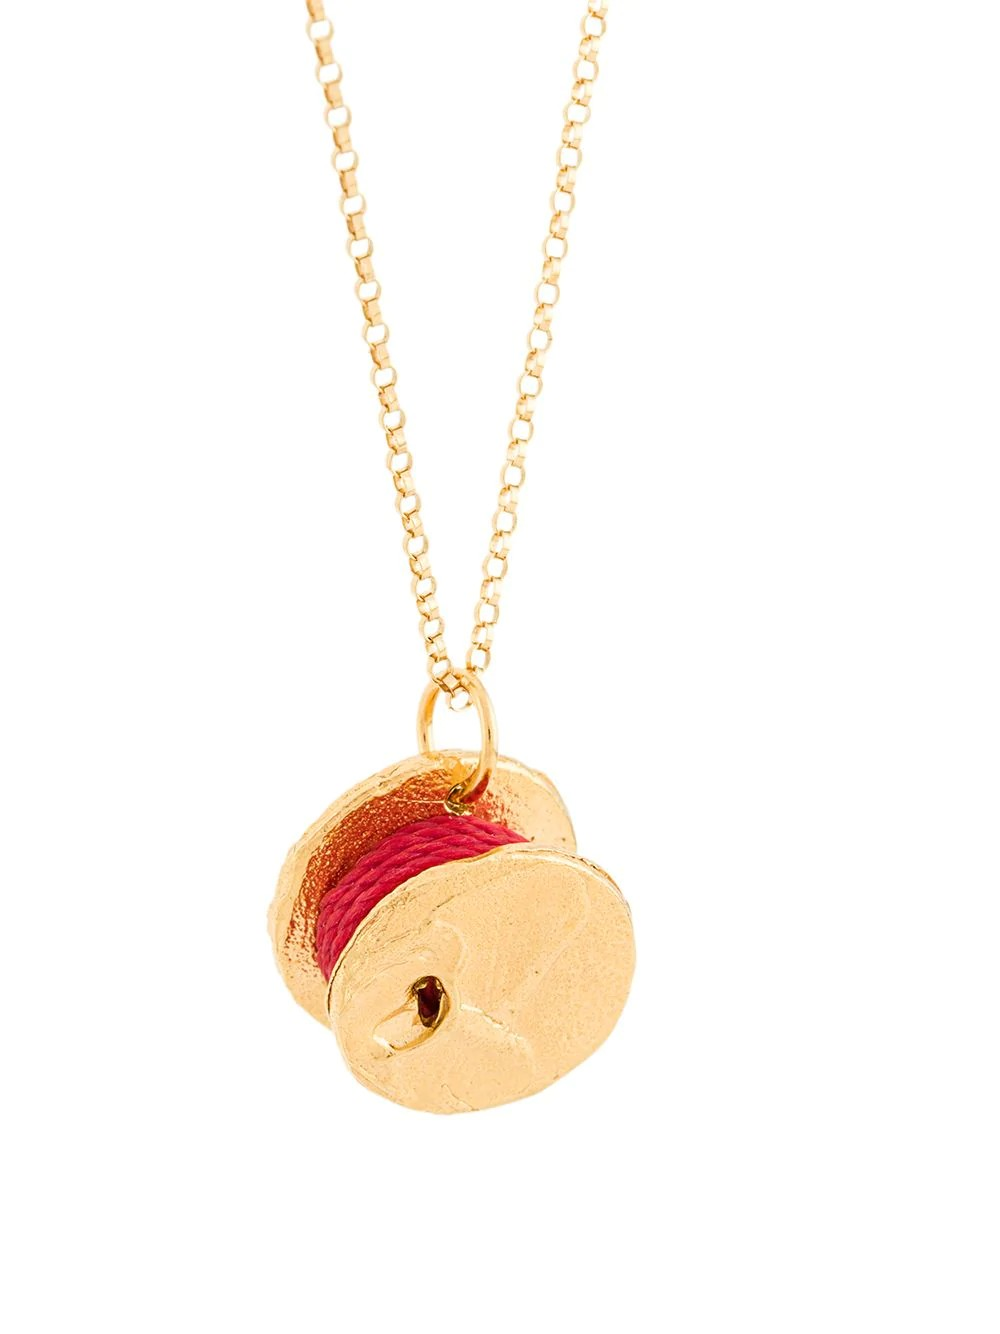 THE SPOOL OF TRUTH NECKLACE